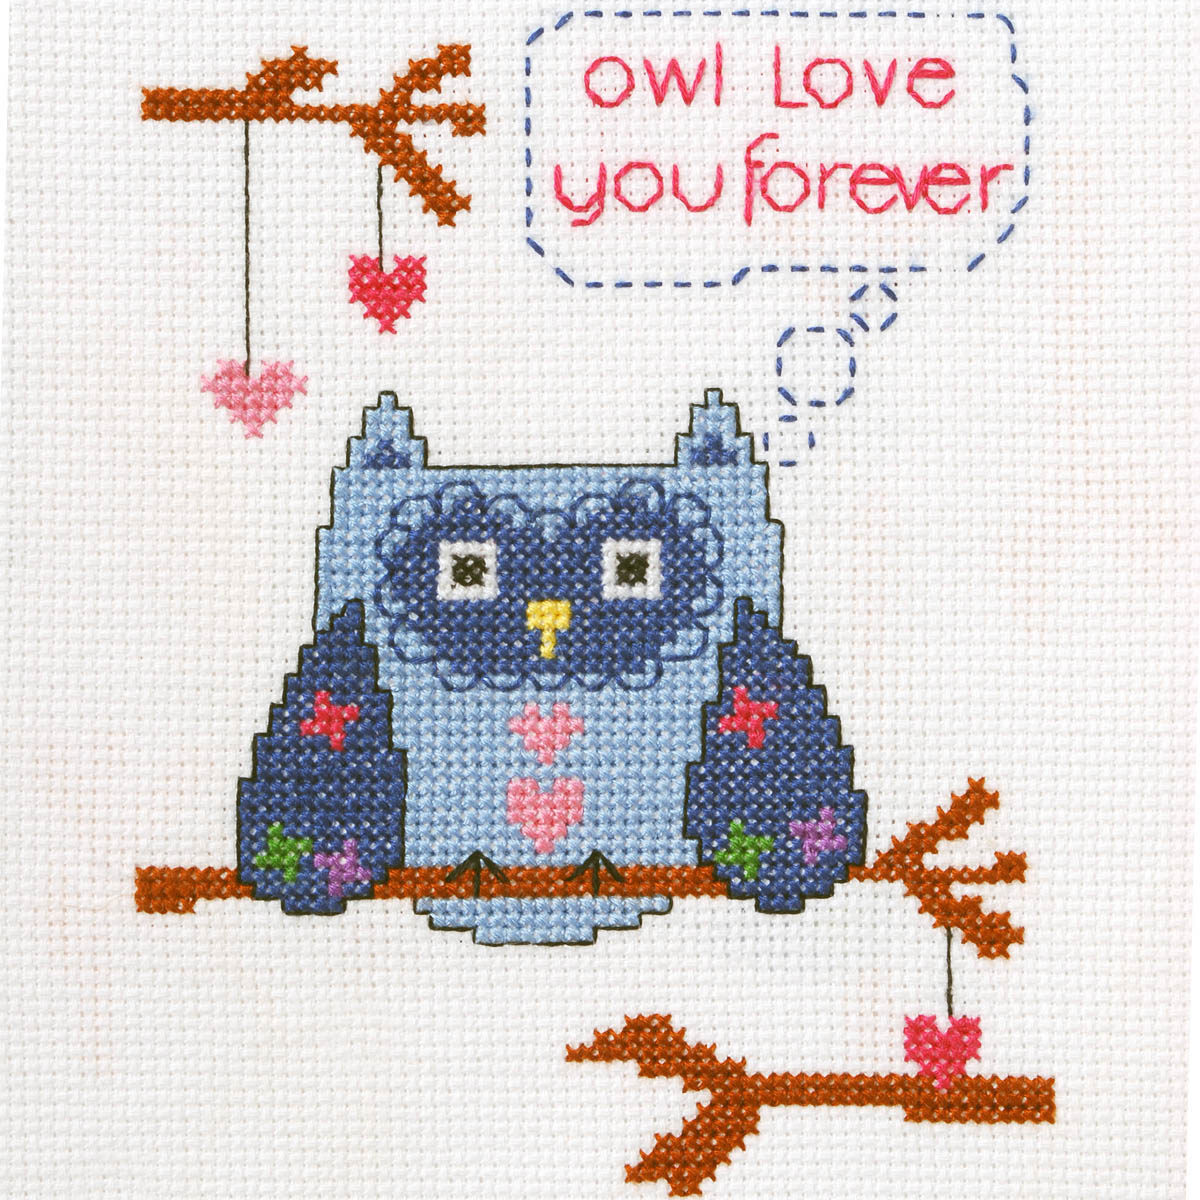 Bucilla ® My 1st Stitch™ - Counted Cross Stitch Kits - Owl Love You Forever